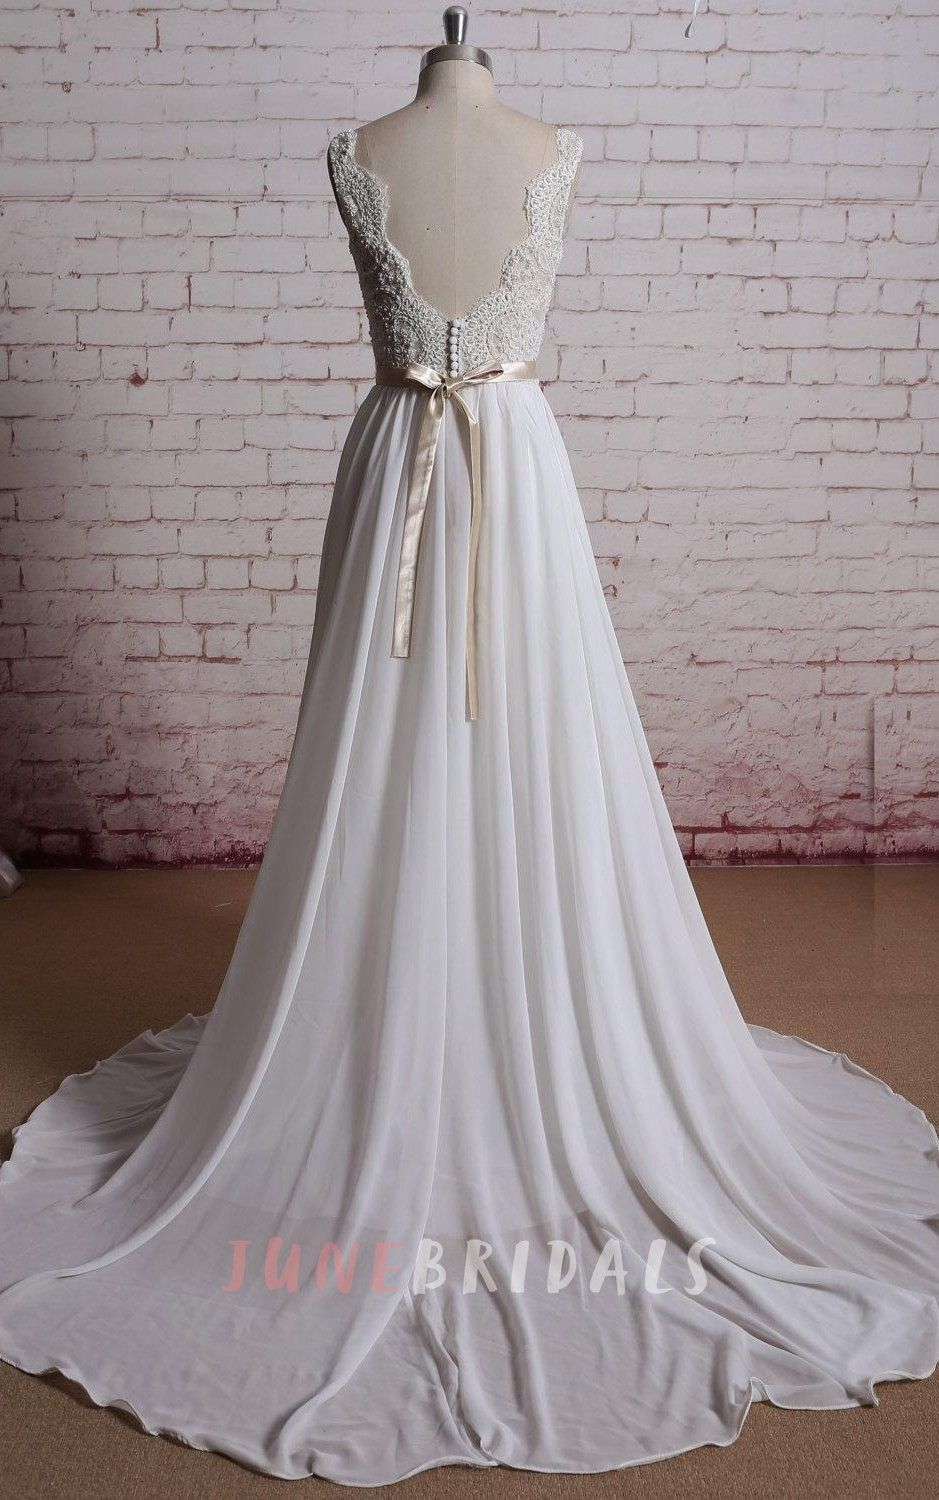 Long wedding dress  VNeck Long Chiffon Bridal Gown With Champagne Lining of the Bodice